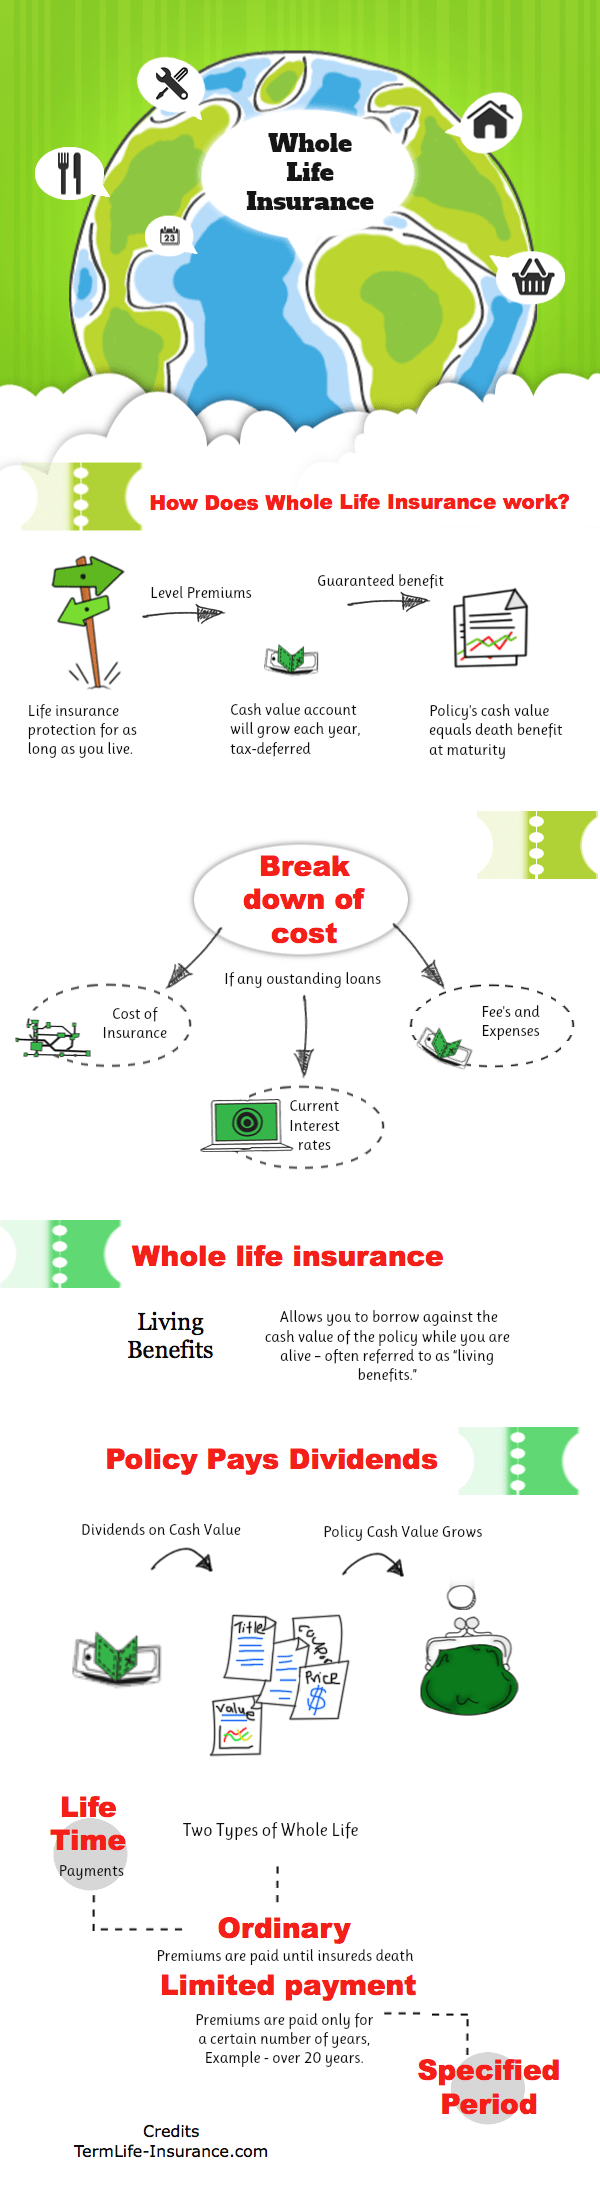 Free Whole Life Insurance Quotes Alluring Instant Whole Life Insurance Quotesup To $100000 In Coverage.